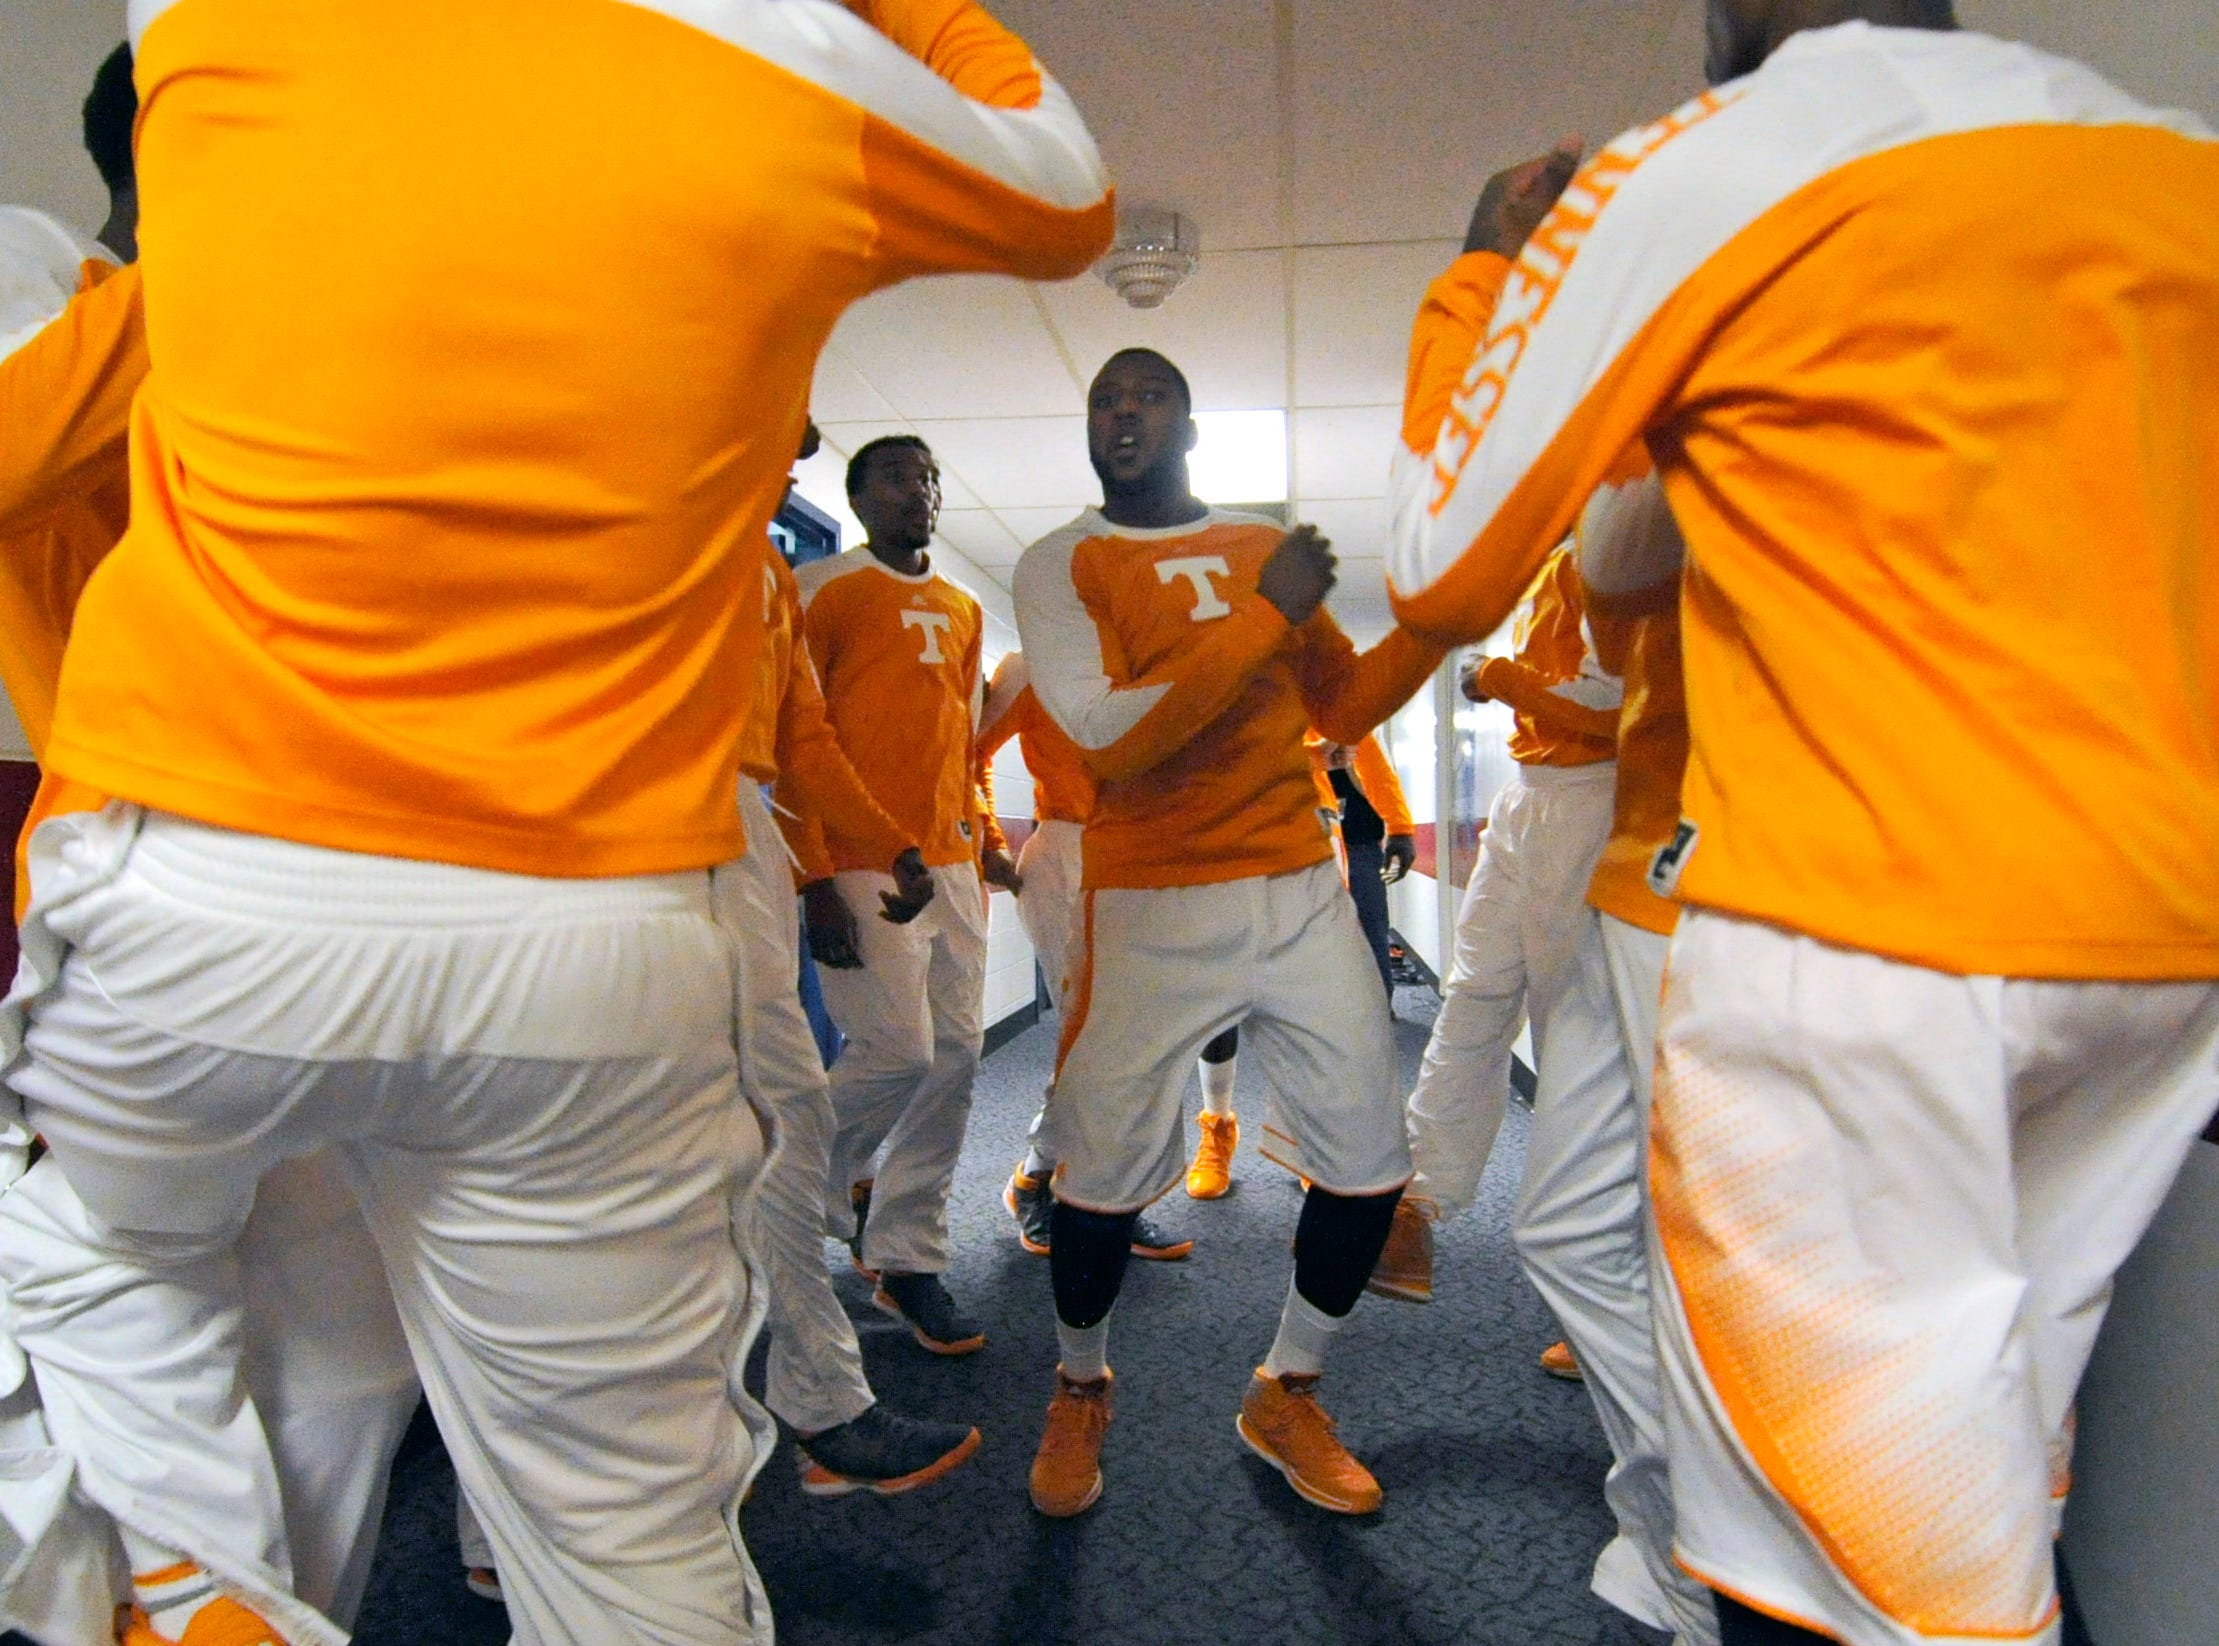 Tennessee forward Jeronne Maymon (34), center, rallies with his teammates in the locker room hallway before their NCAA tournament First Four play-in game against Iowa at the University of Dayton Arena in Dayton, Ohio on Wednesday, March 19, 2014.